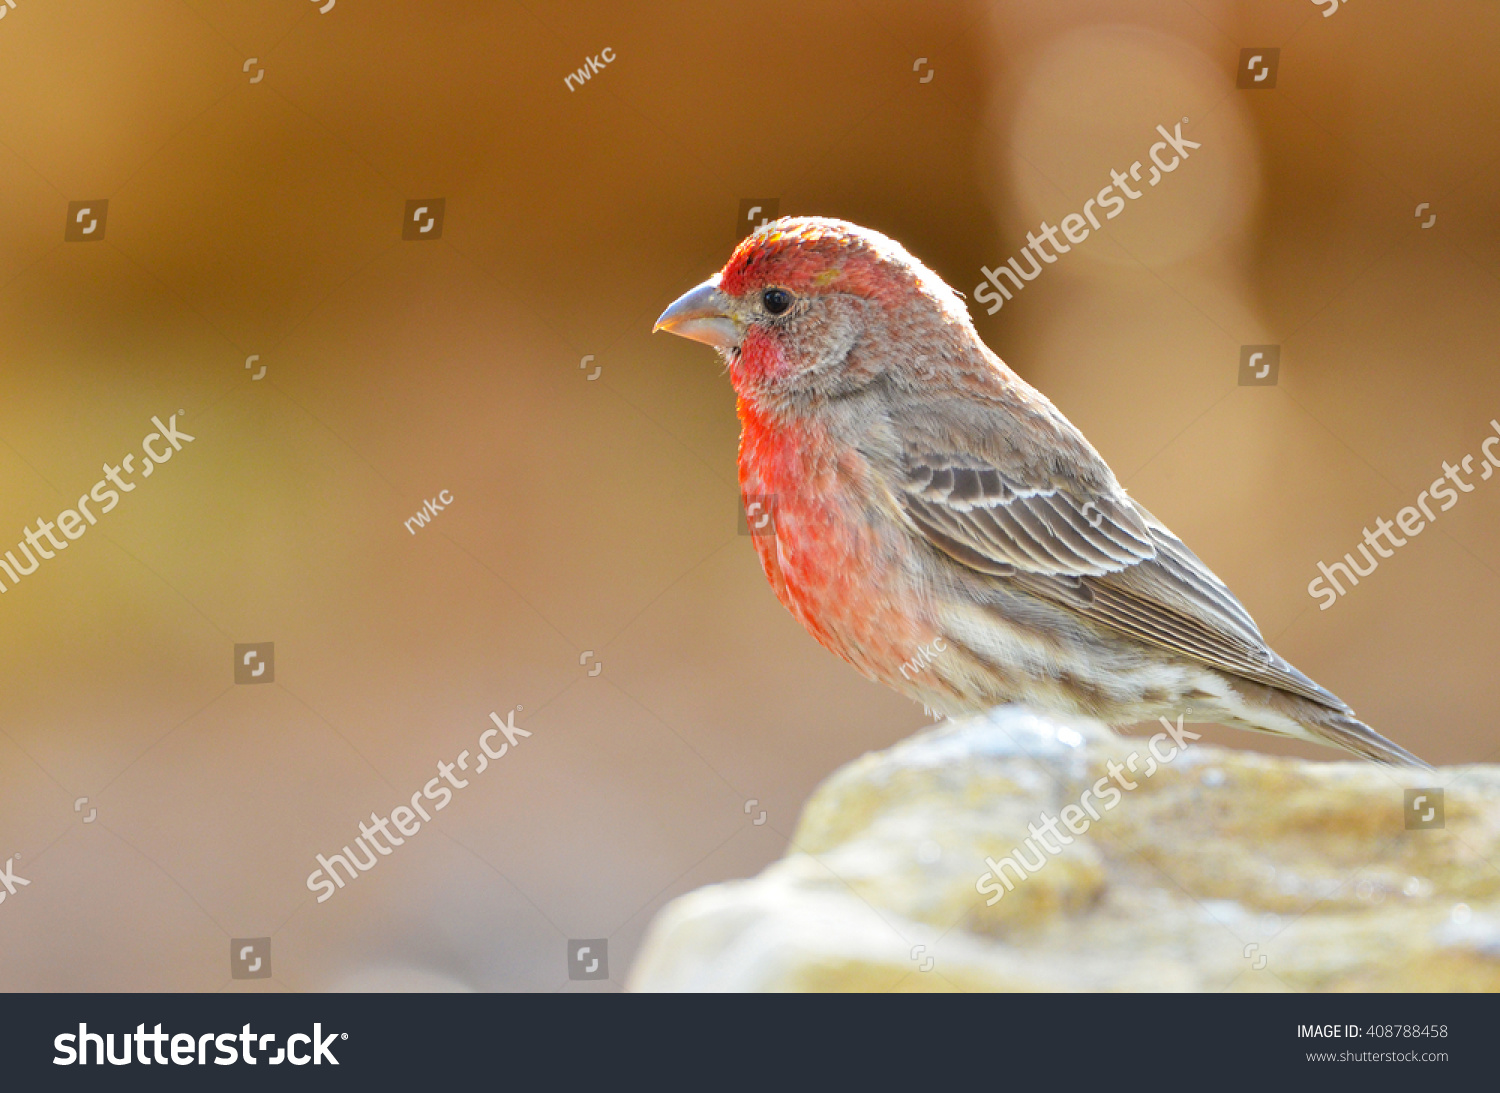 Southwest USA Beautiful Red Male House Finches Bright orange red on  forehead, throat, and